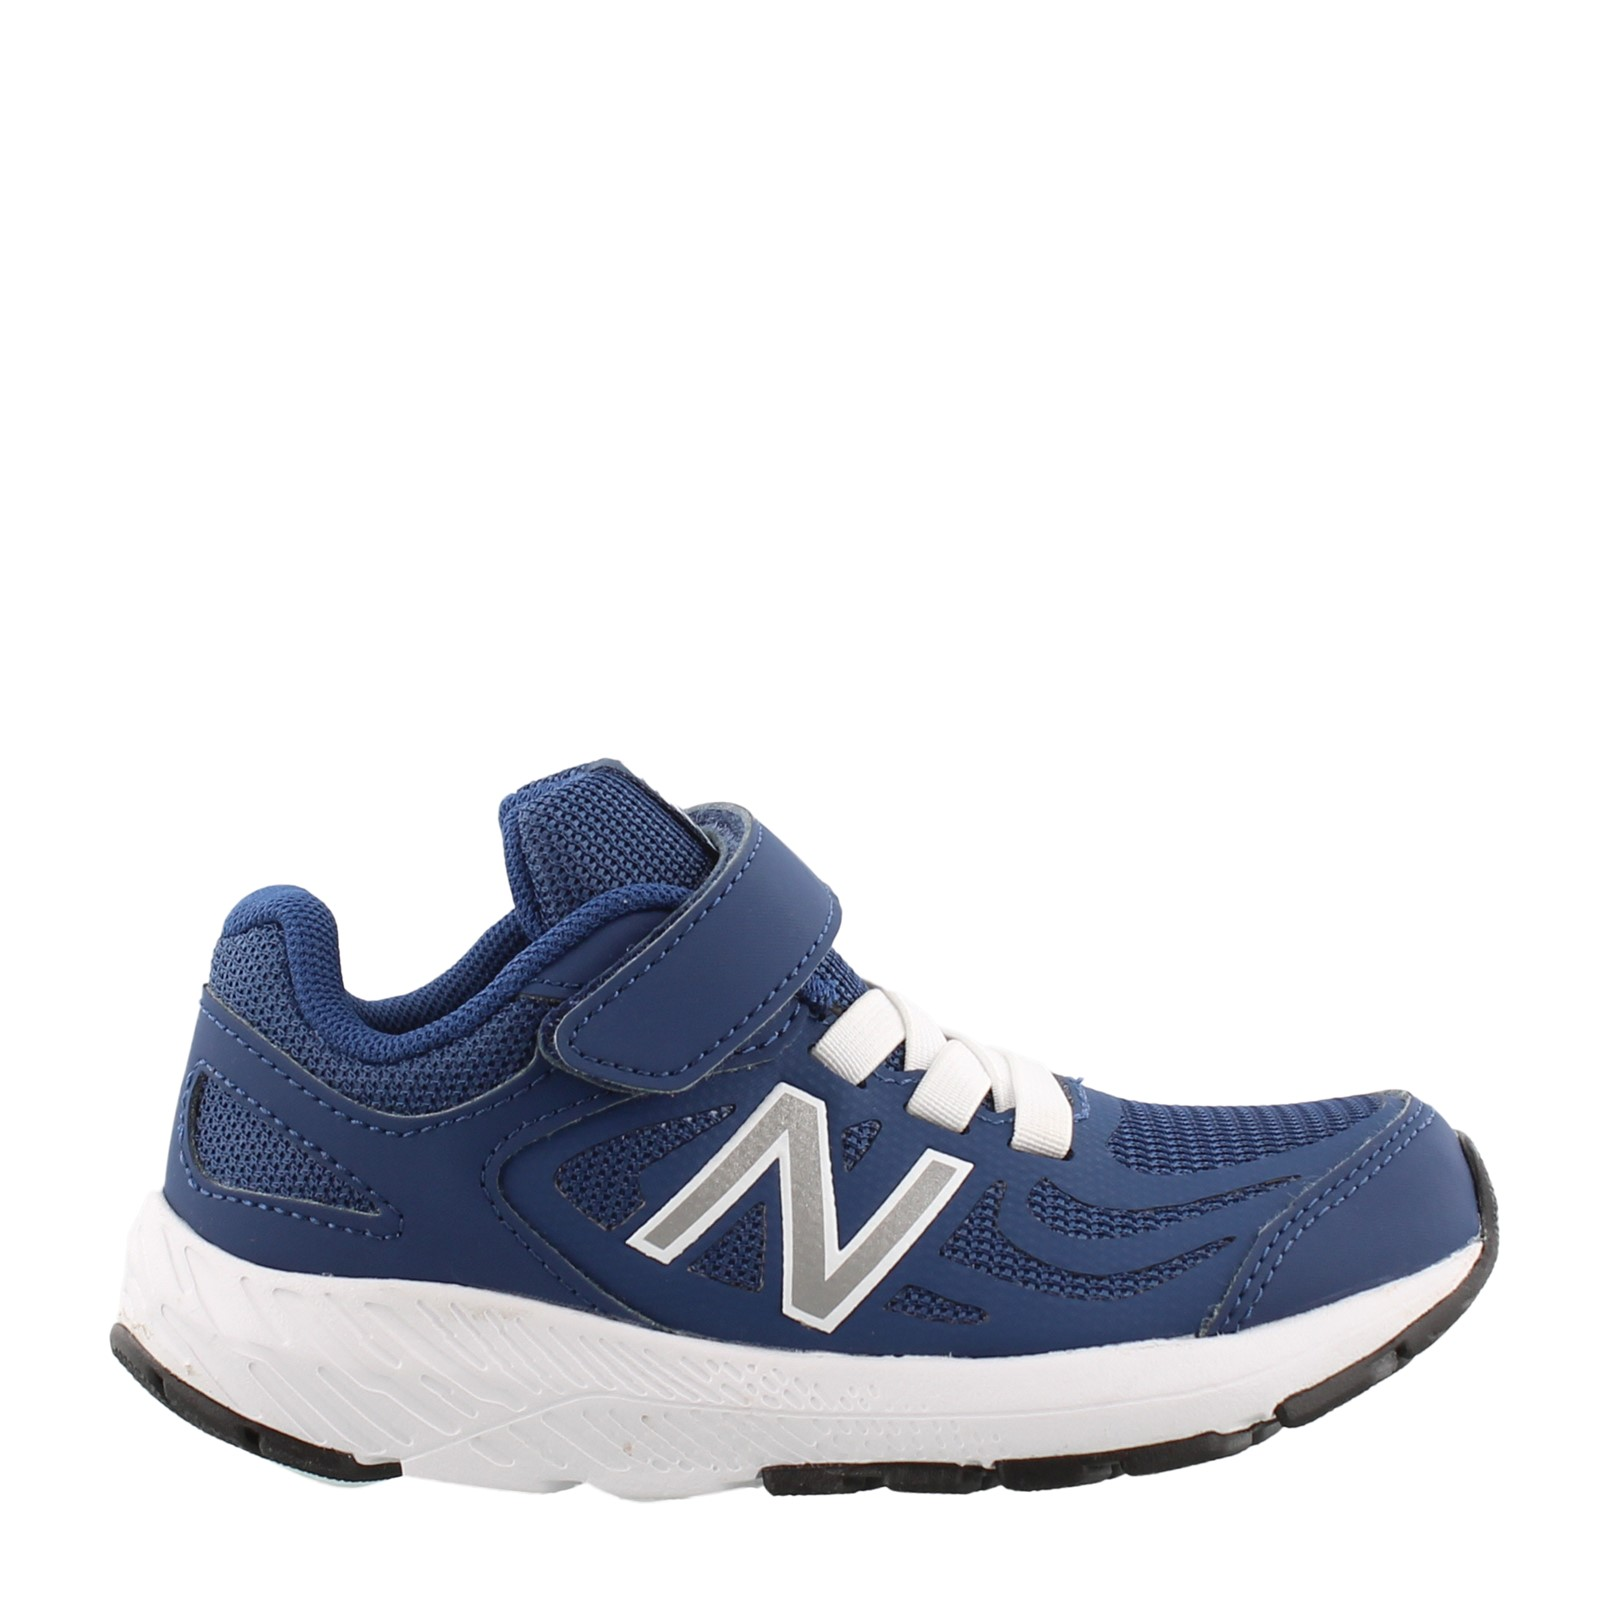 Boy's New Balance, 519 Sneaker - Little Kid